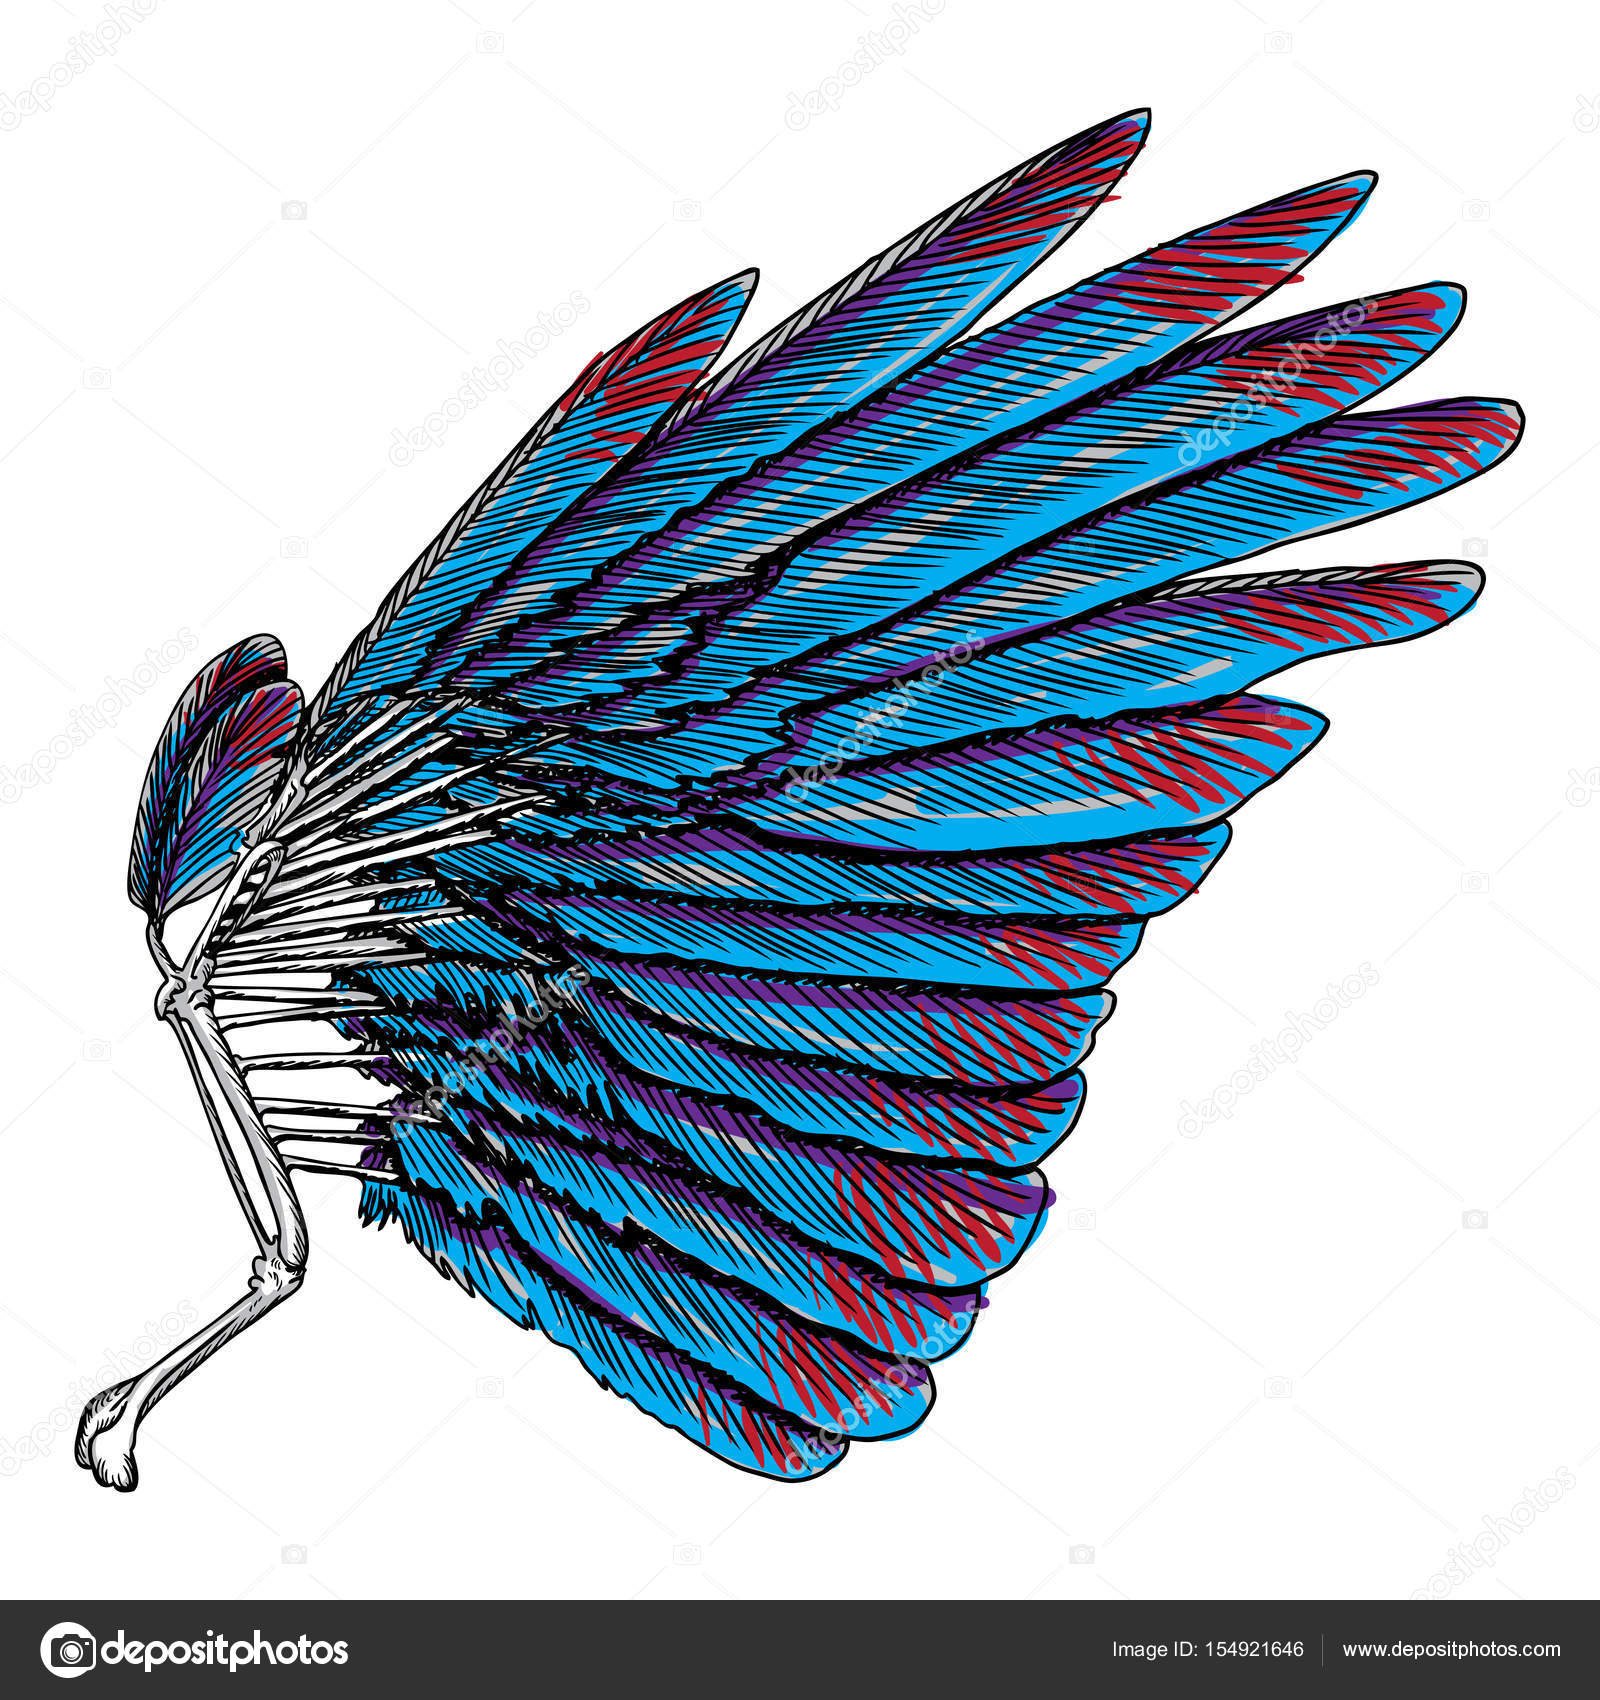 Colorful wing drawing stock vector goldenshrimp 154921646 symbolism of lightness spirituality heaven and imagination freedom and victory woodcut vintage style wing hipster tattoo or vintage body art concept buycottarizona